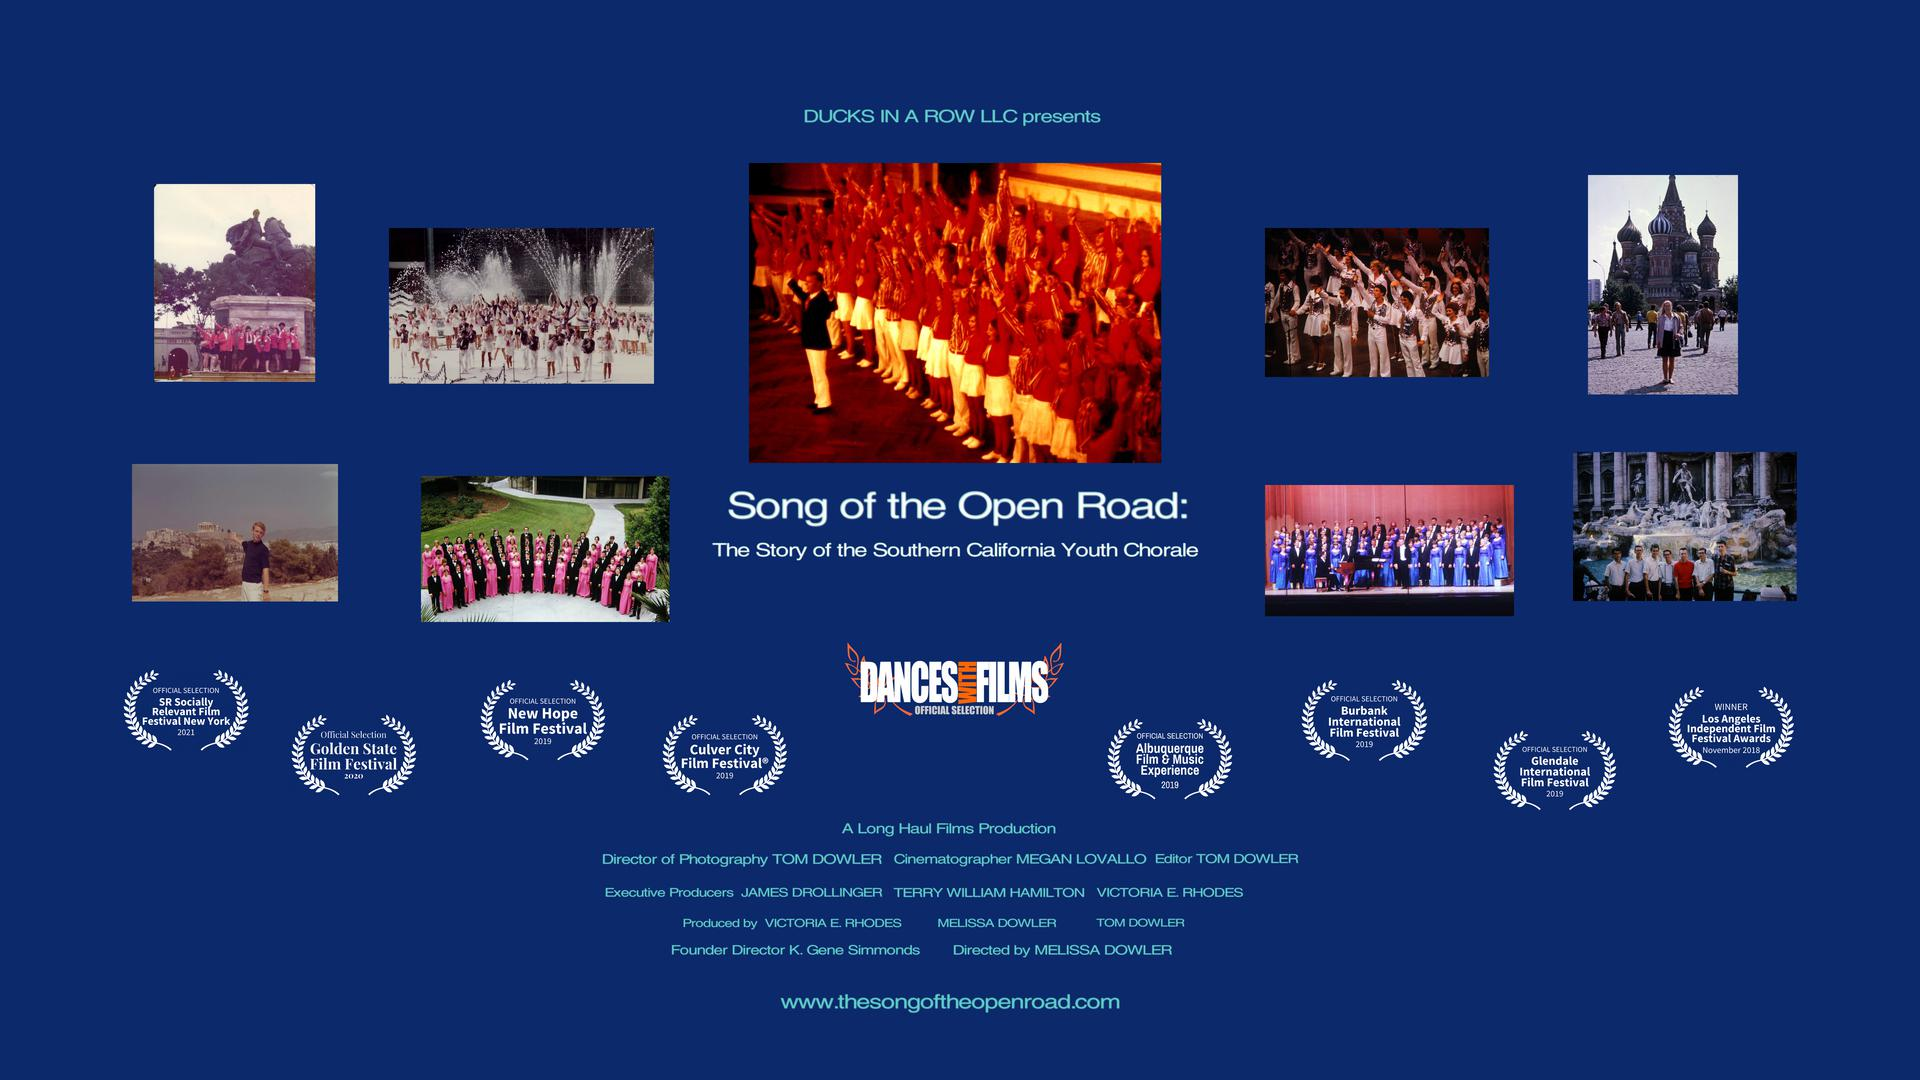 Song of the Open Road: The Southern California Youth Chorale